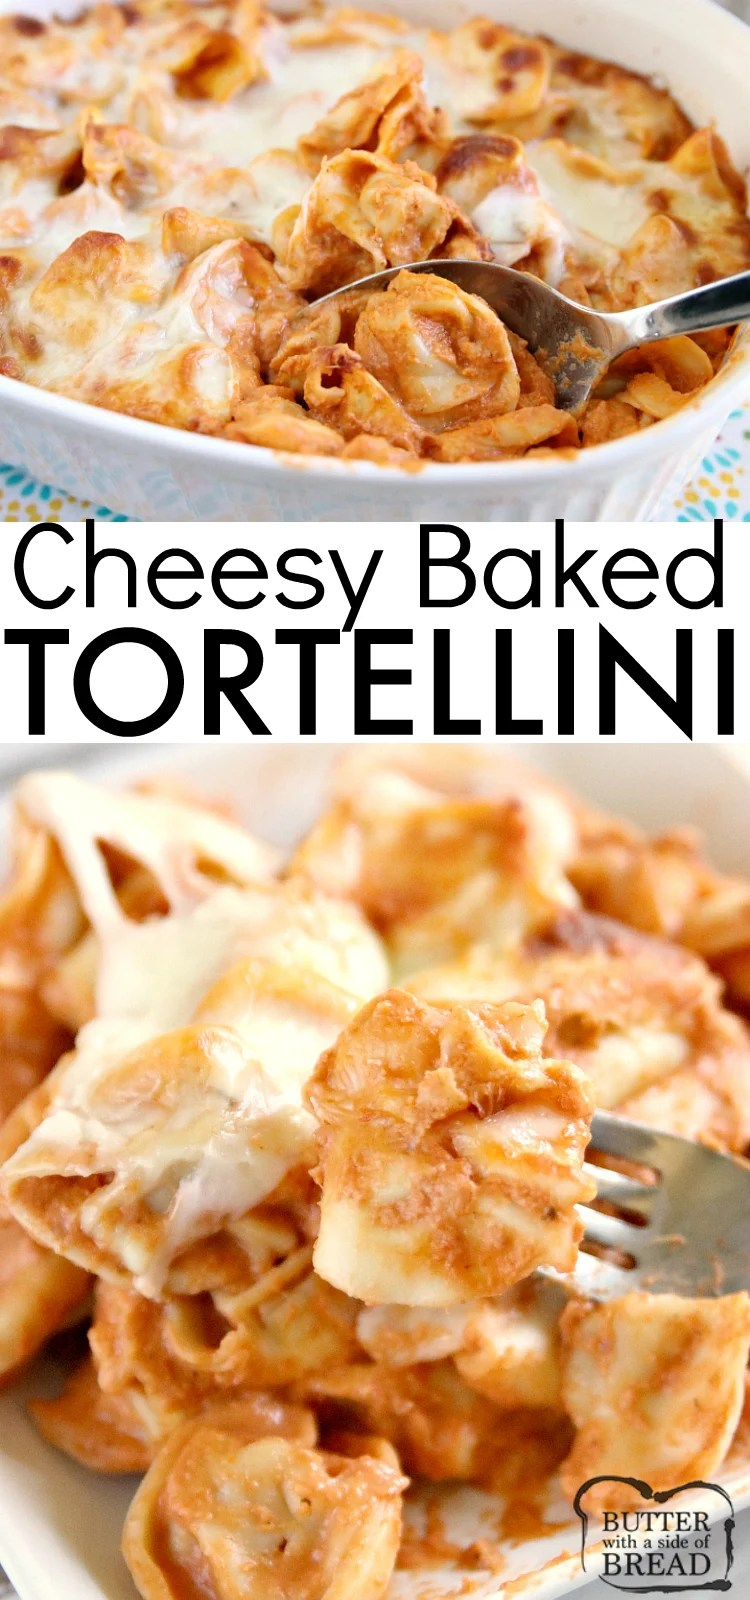 Cheesy Baked Tortellini is made with cream cheese, a jar of spaghetti sauce, cheese tortellini and mozzarella cheese. Only four ingredients in this easy pasta dish that is delicious!